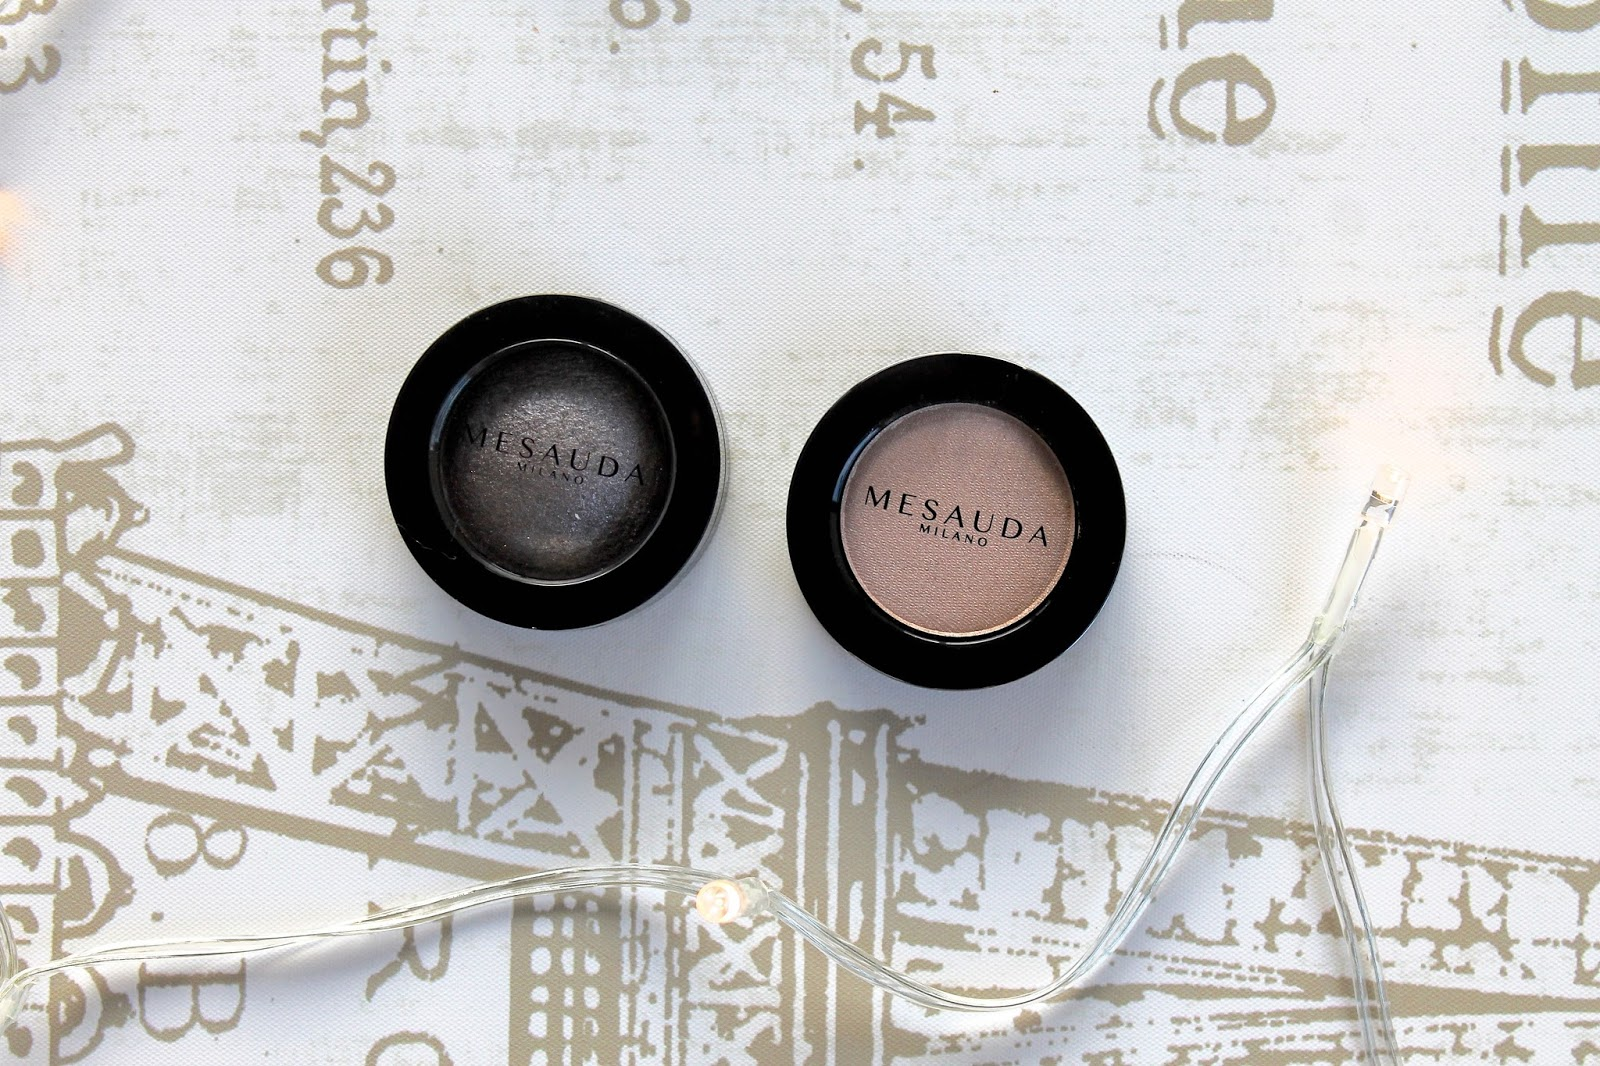 mesauda milano eyeshadow blog review